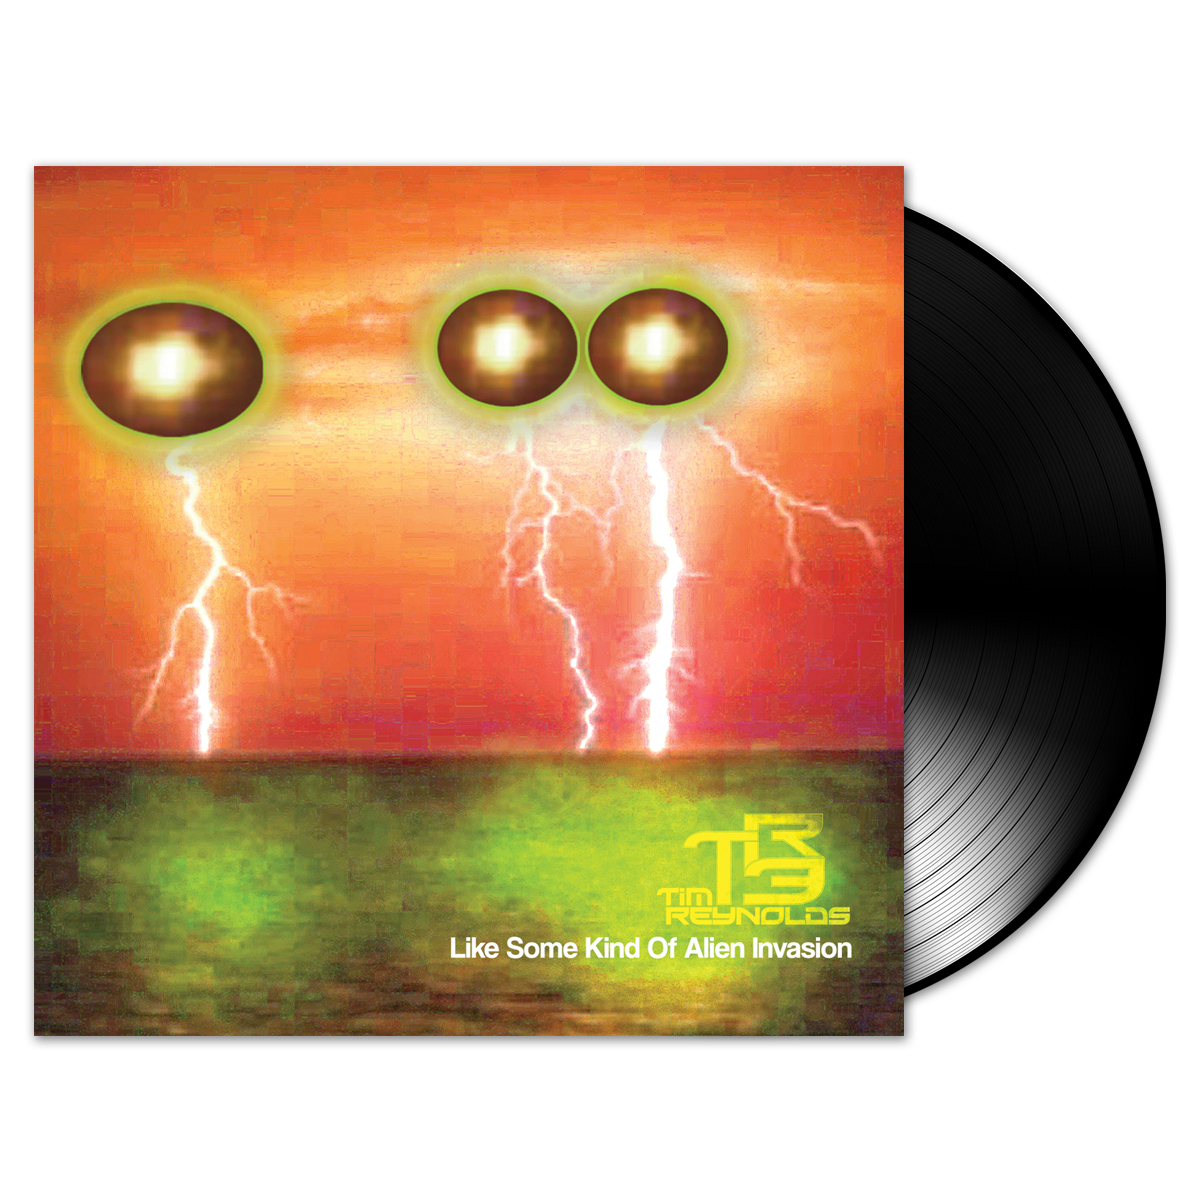 TR3 feat. Tim Reynolds 'Like Some Kind of Alien Invasion' Vinyl